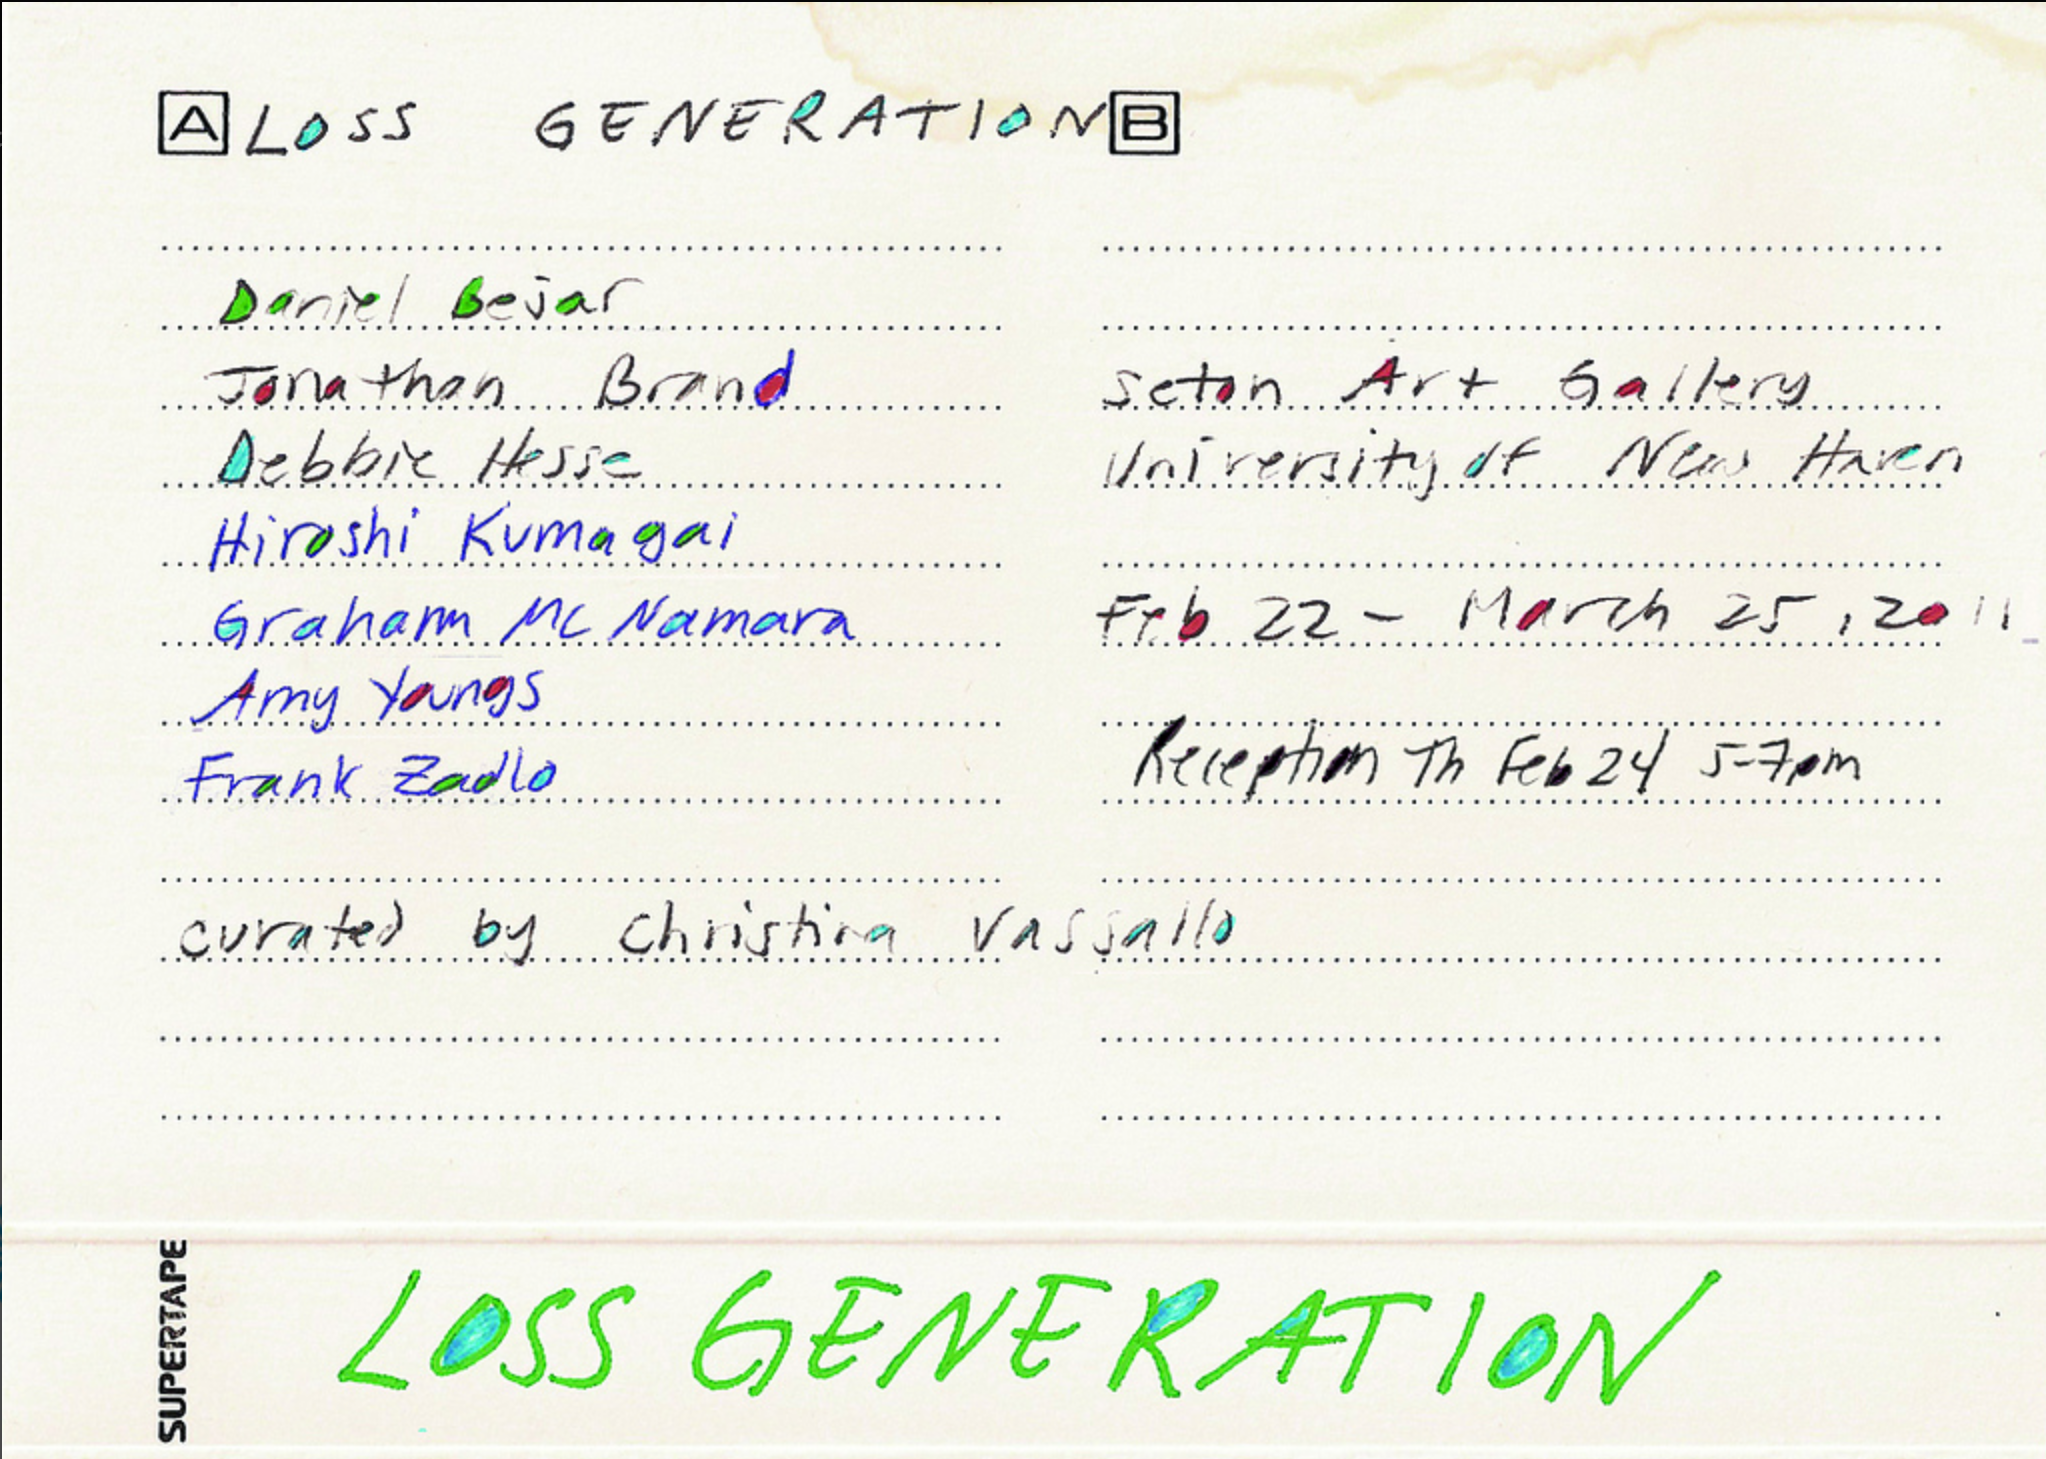 Loss Generation  exhibition announcement